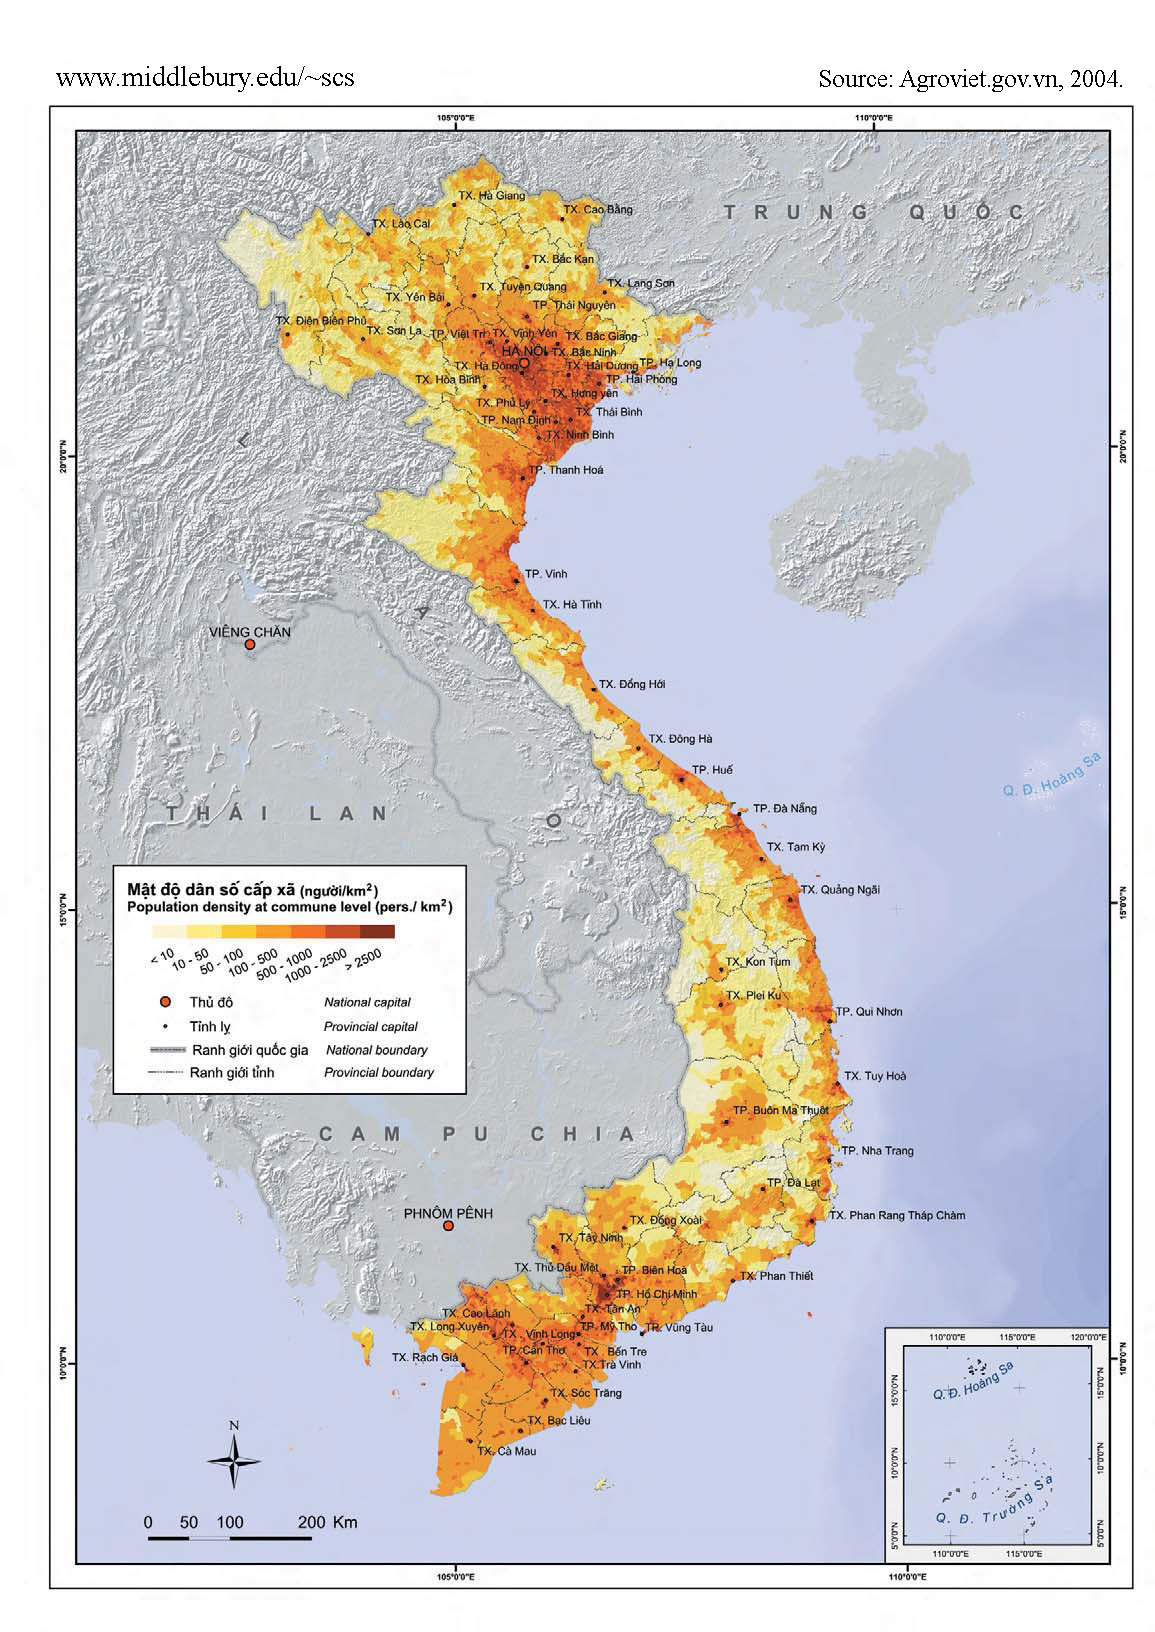 Vietnam Population Density The South China Sea